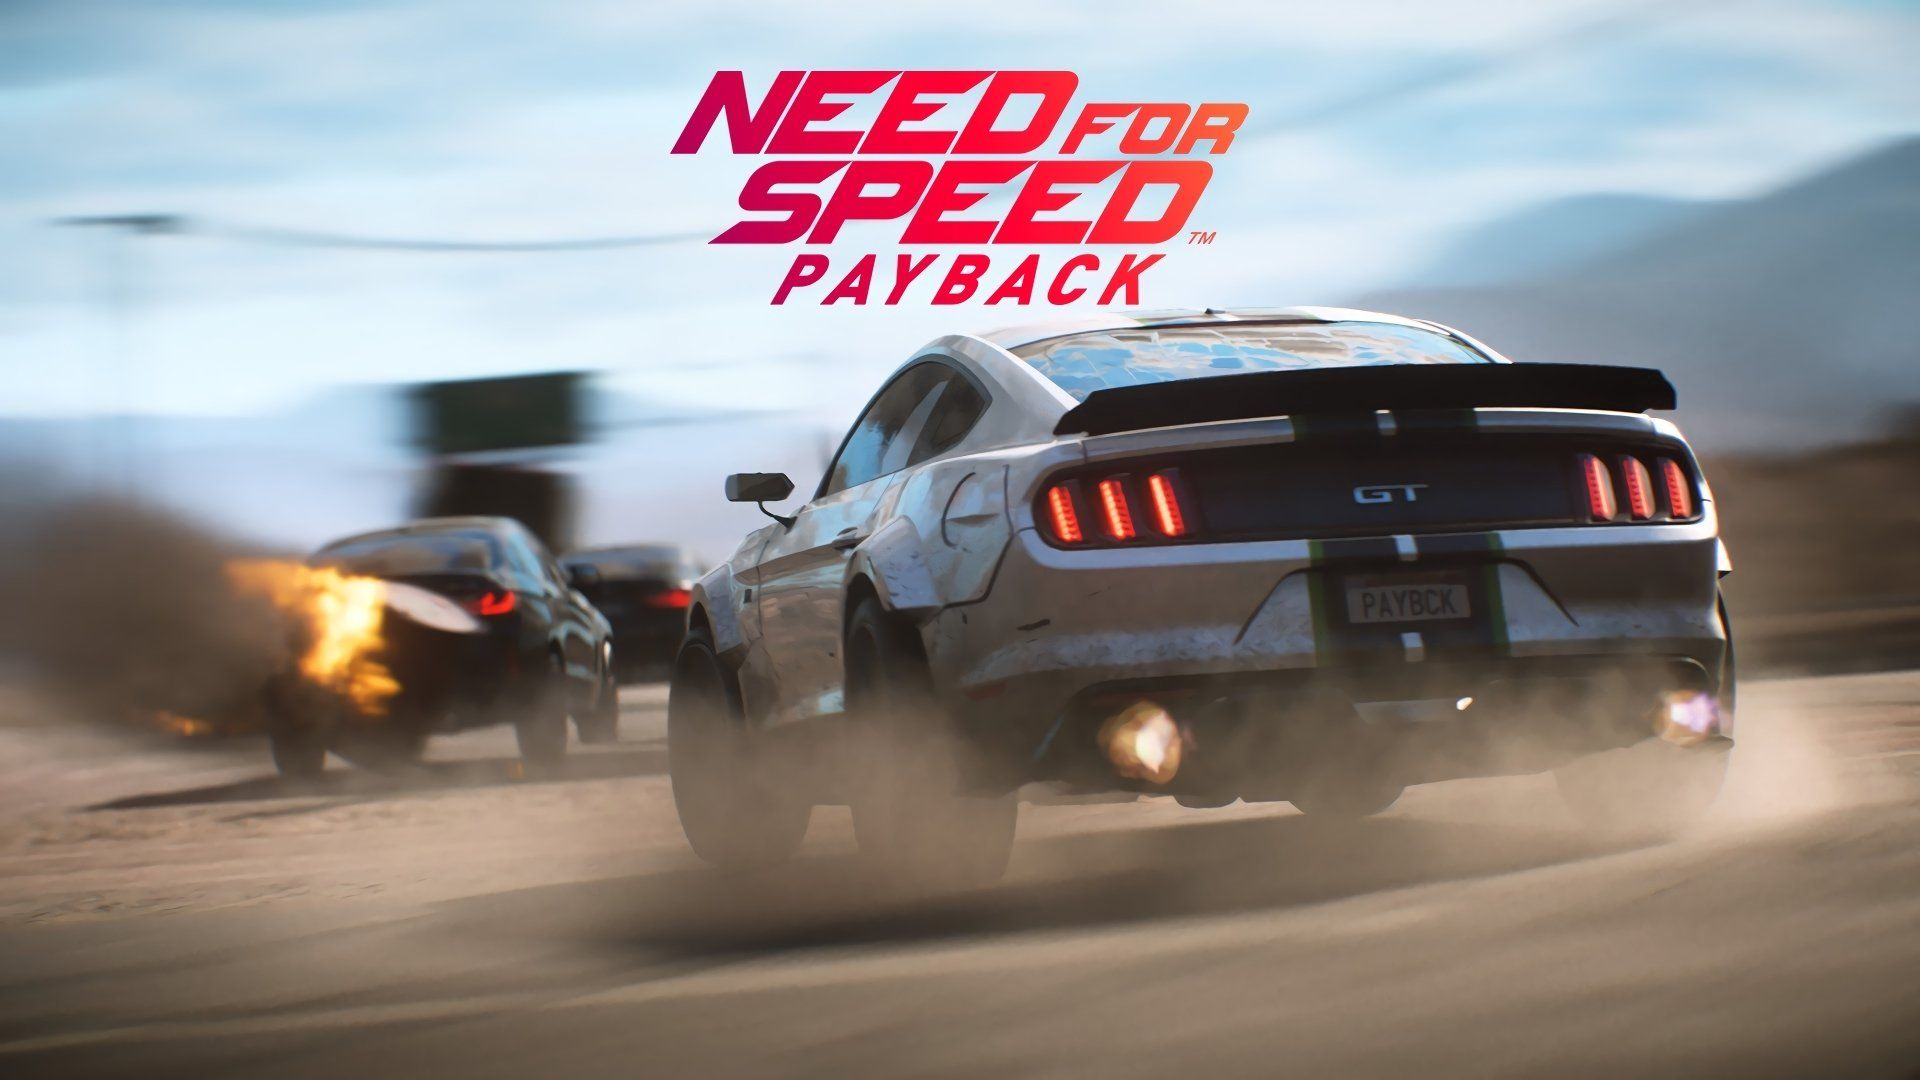 Image Result For Need For Speed Payback Wallpaper Need For Speed